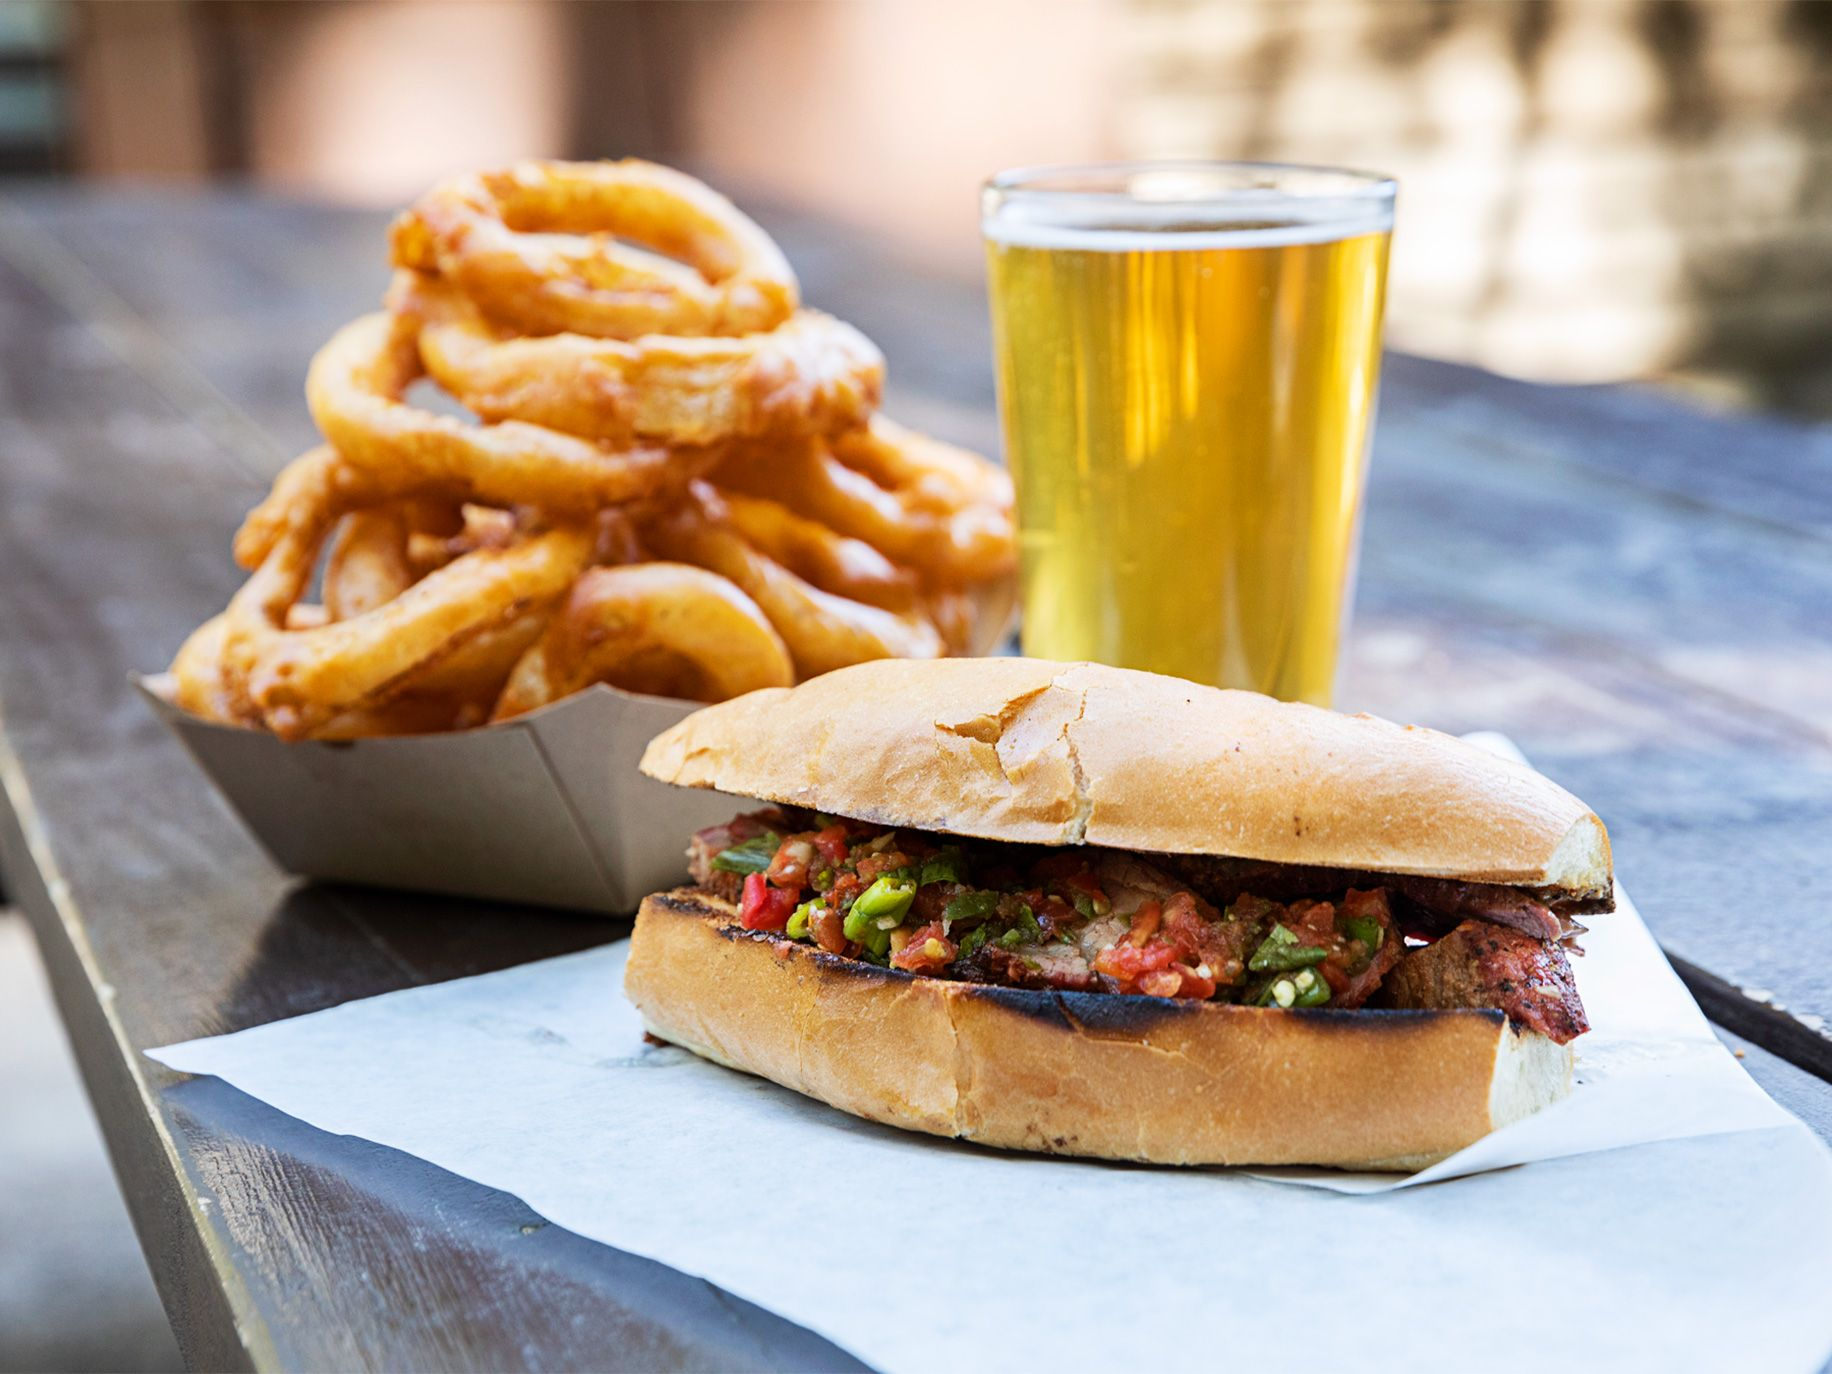 A tri-tip sandwich, onion rings, and draft beer make for simple pleasure.